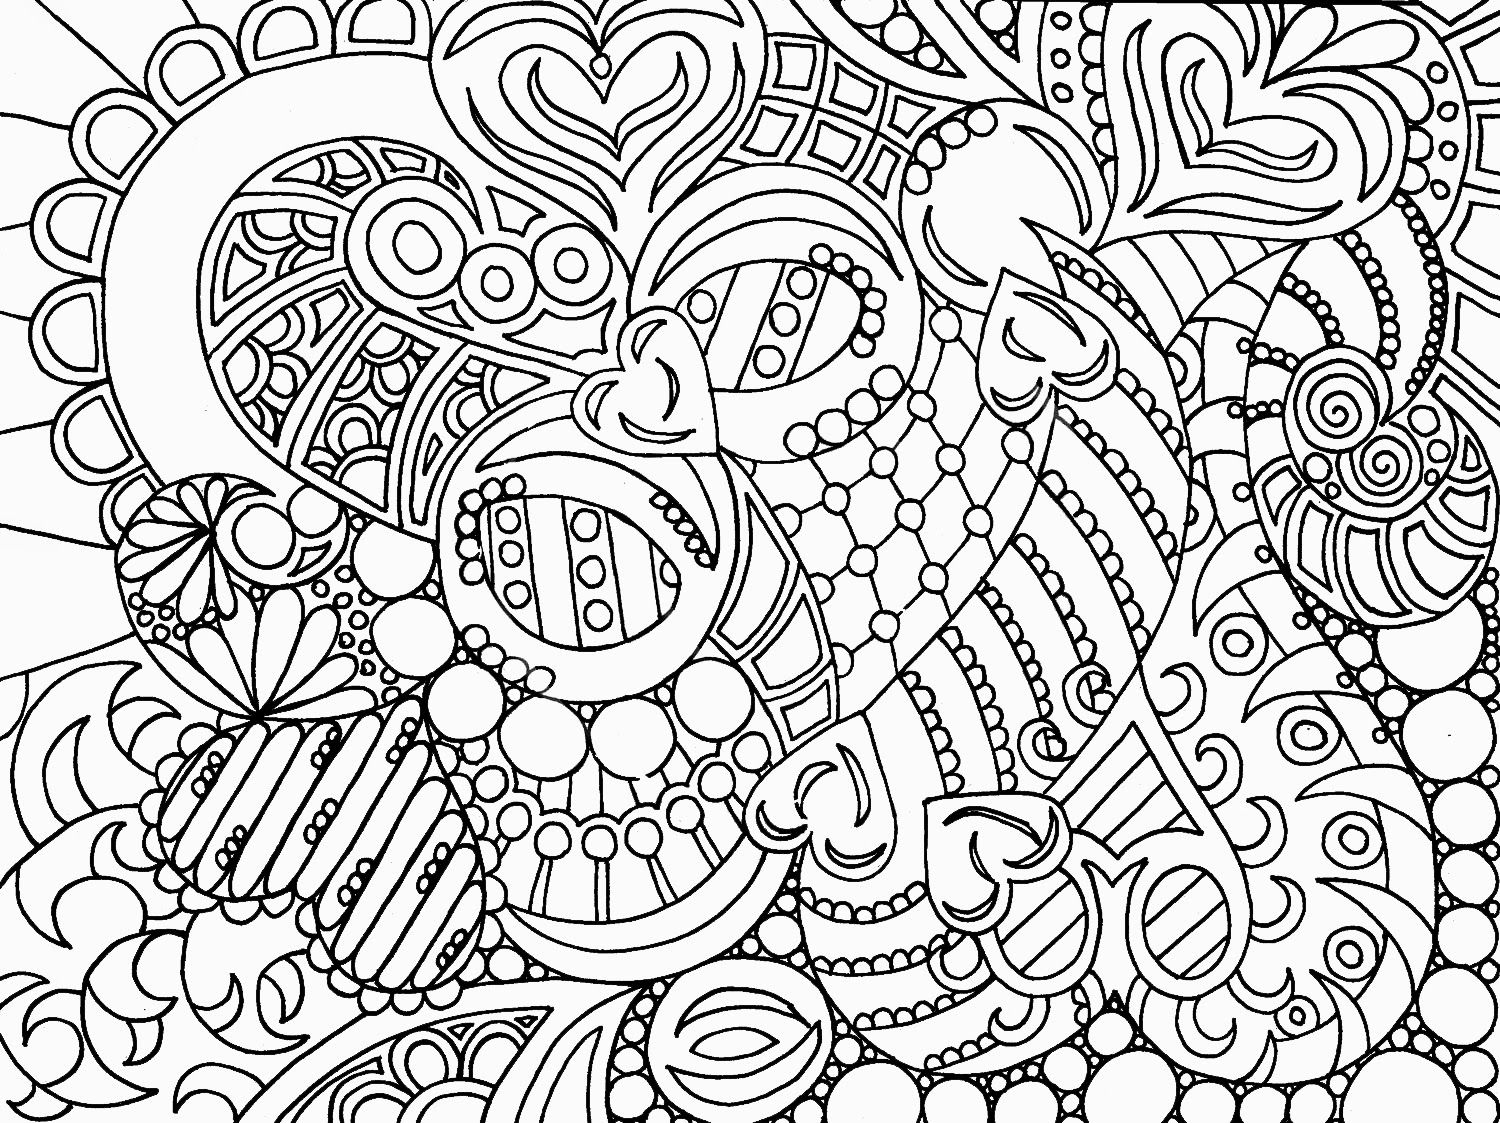 adult coloring page adult coloring a tangle of flowers set of 8 by emerlyearts adult page coloring